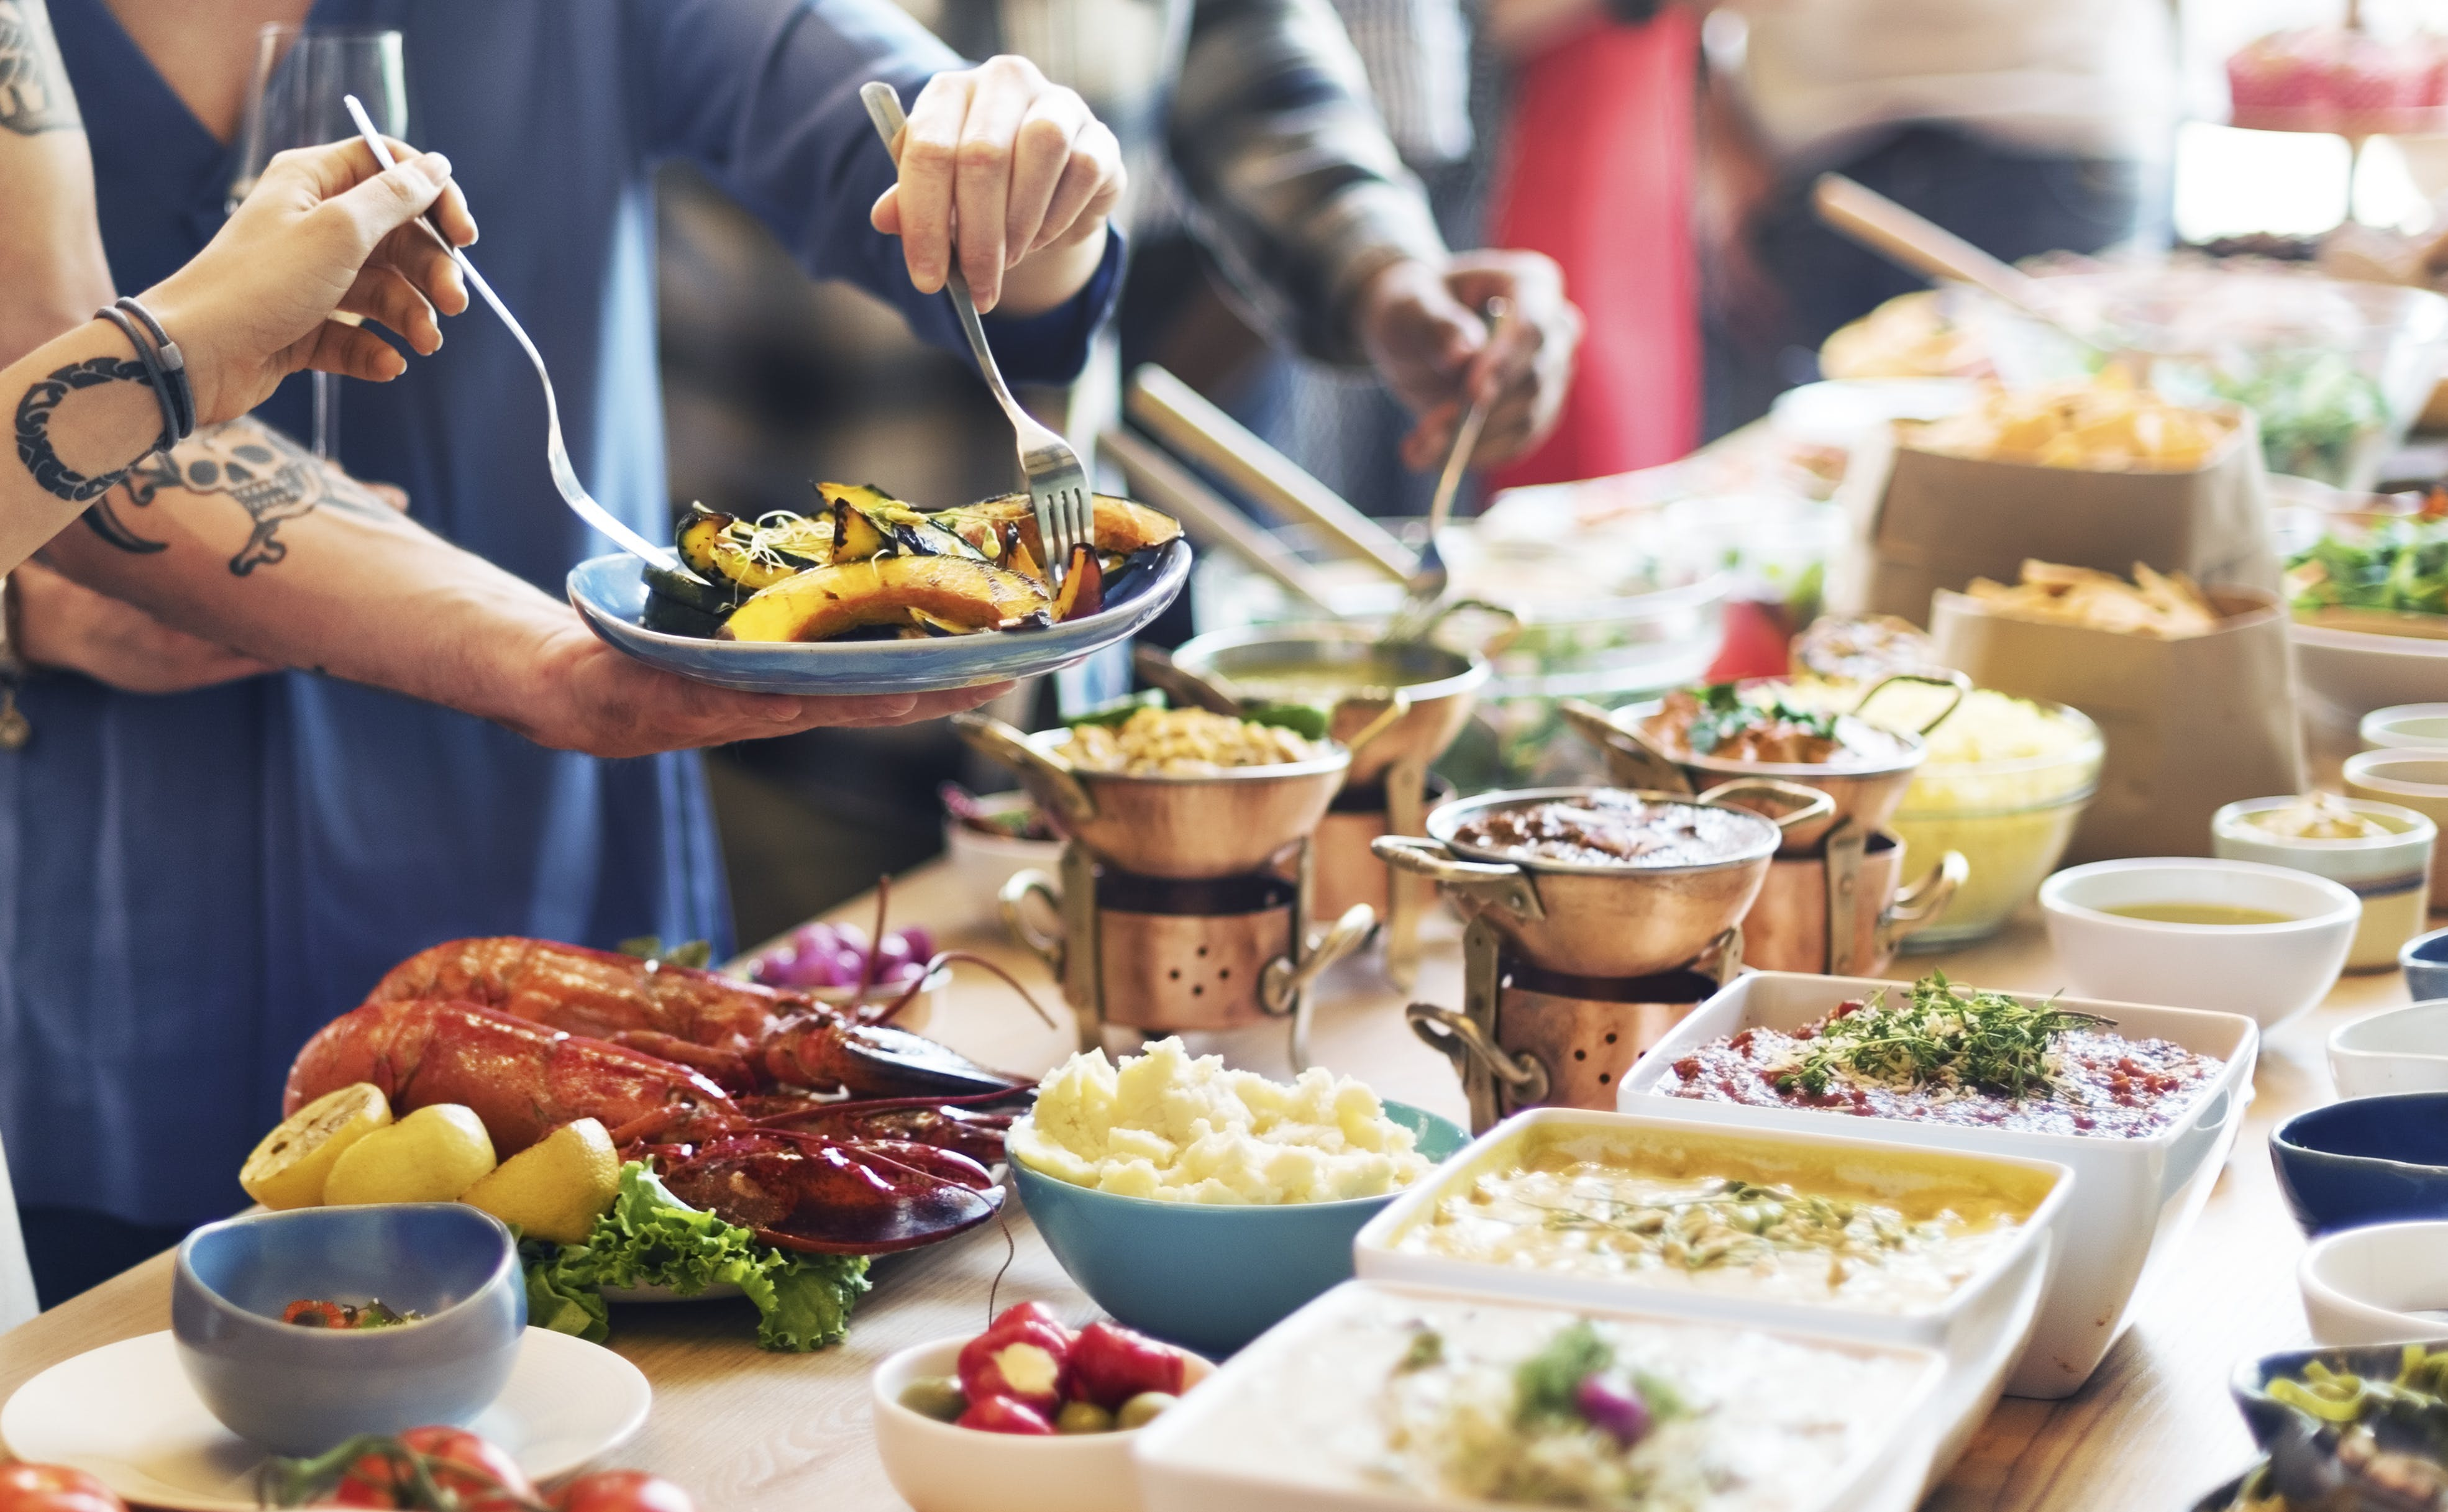 Catering Eating Companionship Buffet Festive Concept